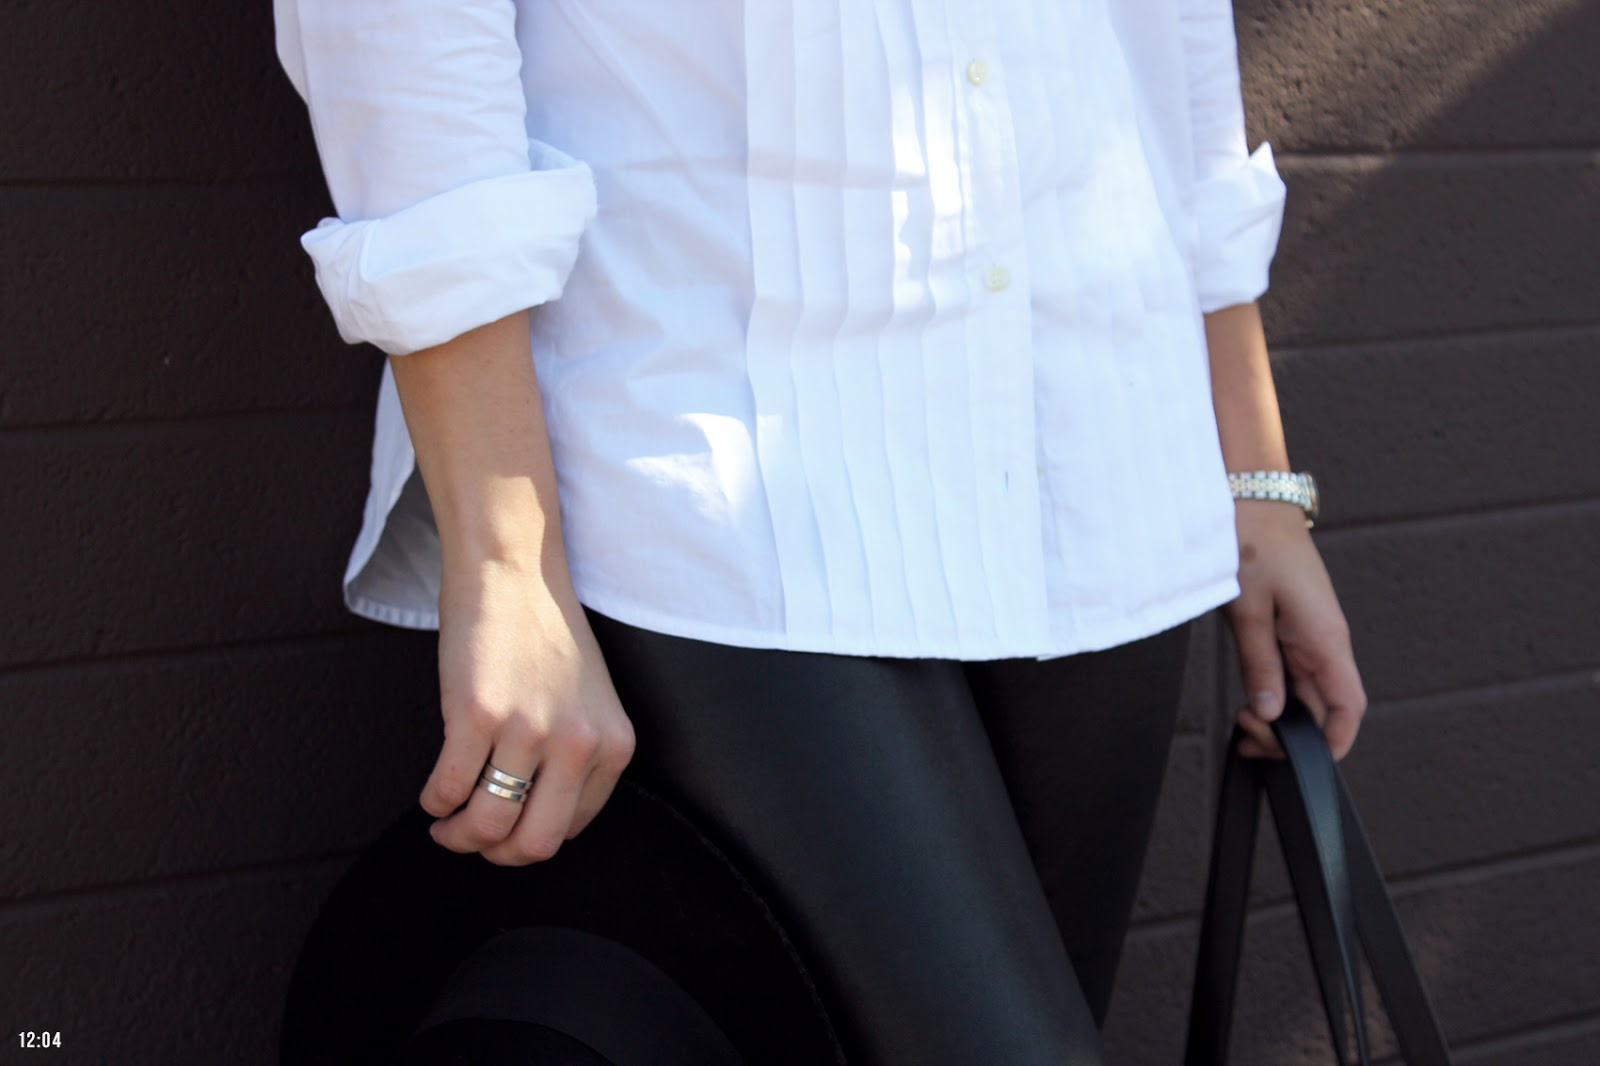 567-twelveofour-weekend-casual-leather-leggings-tuxedo-shirt-IMG_3864.jpg